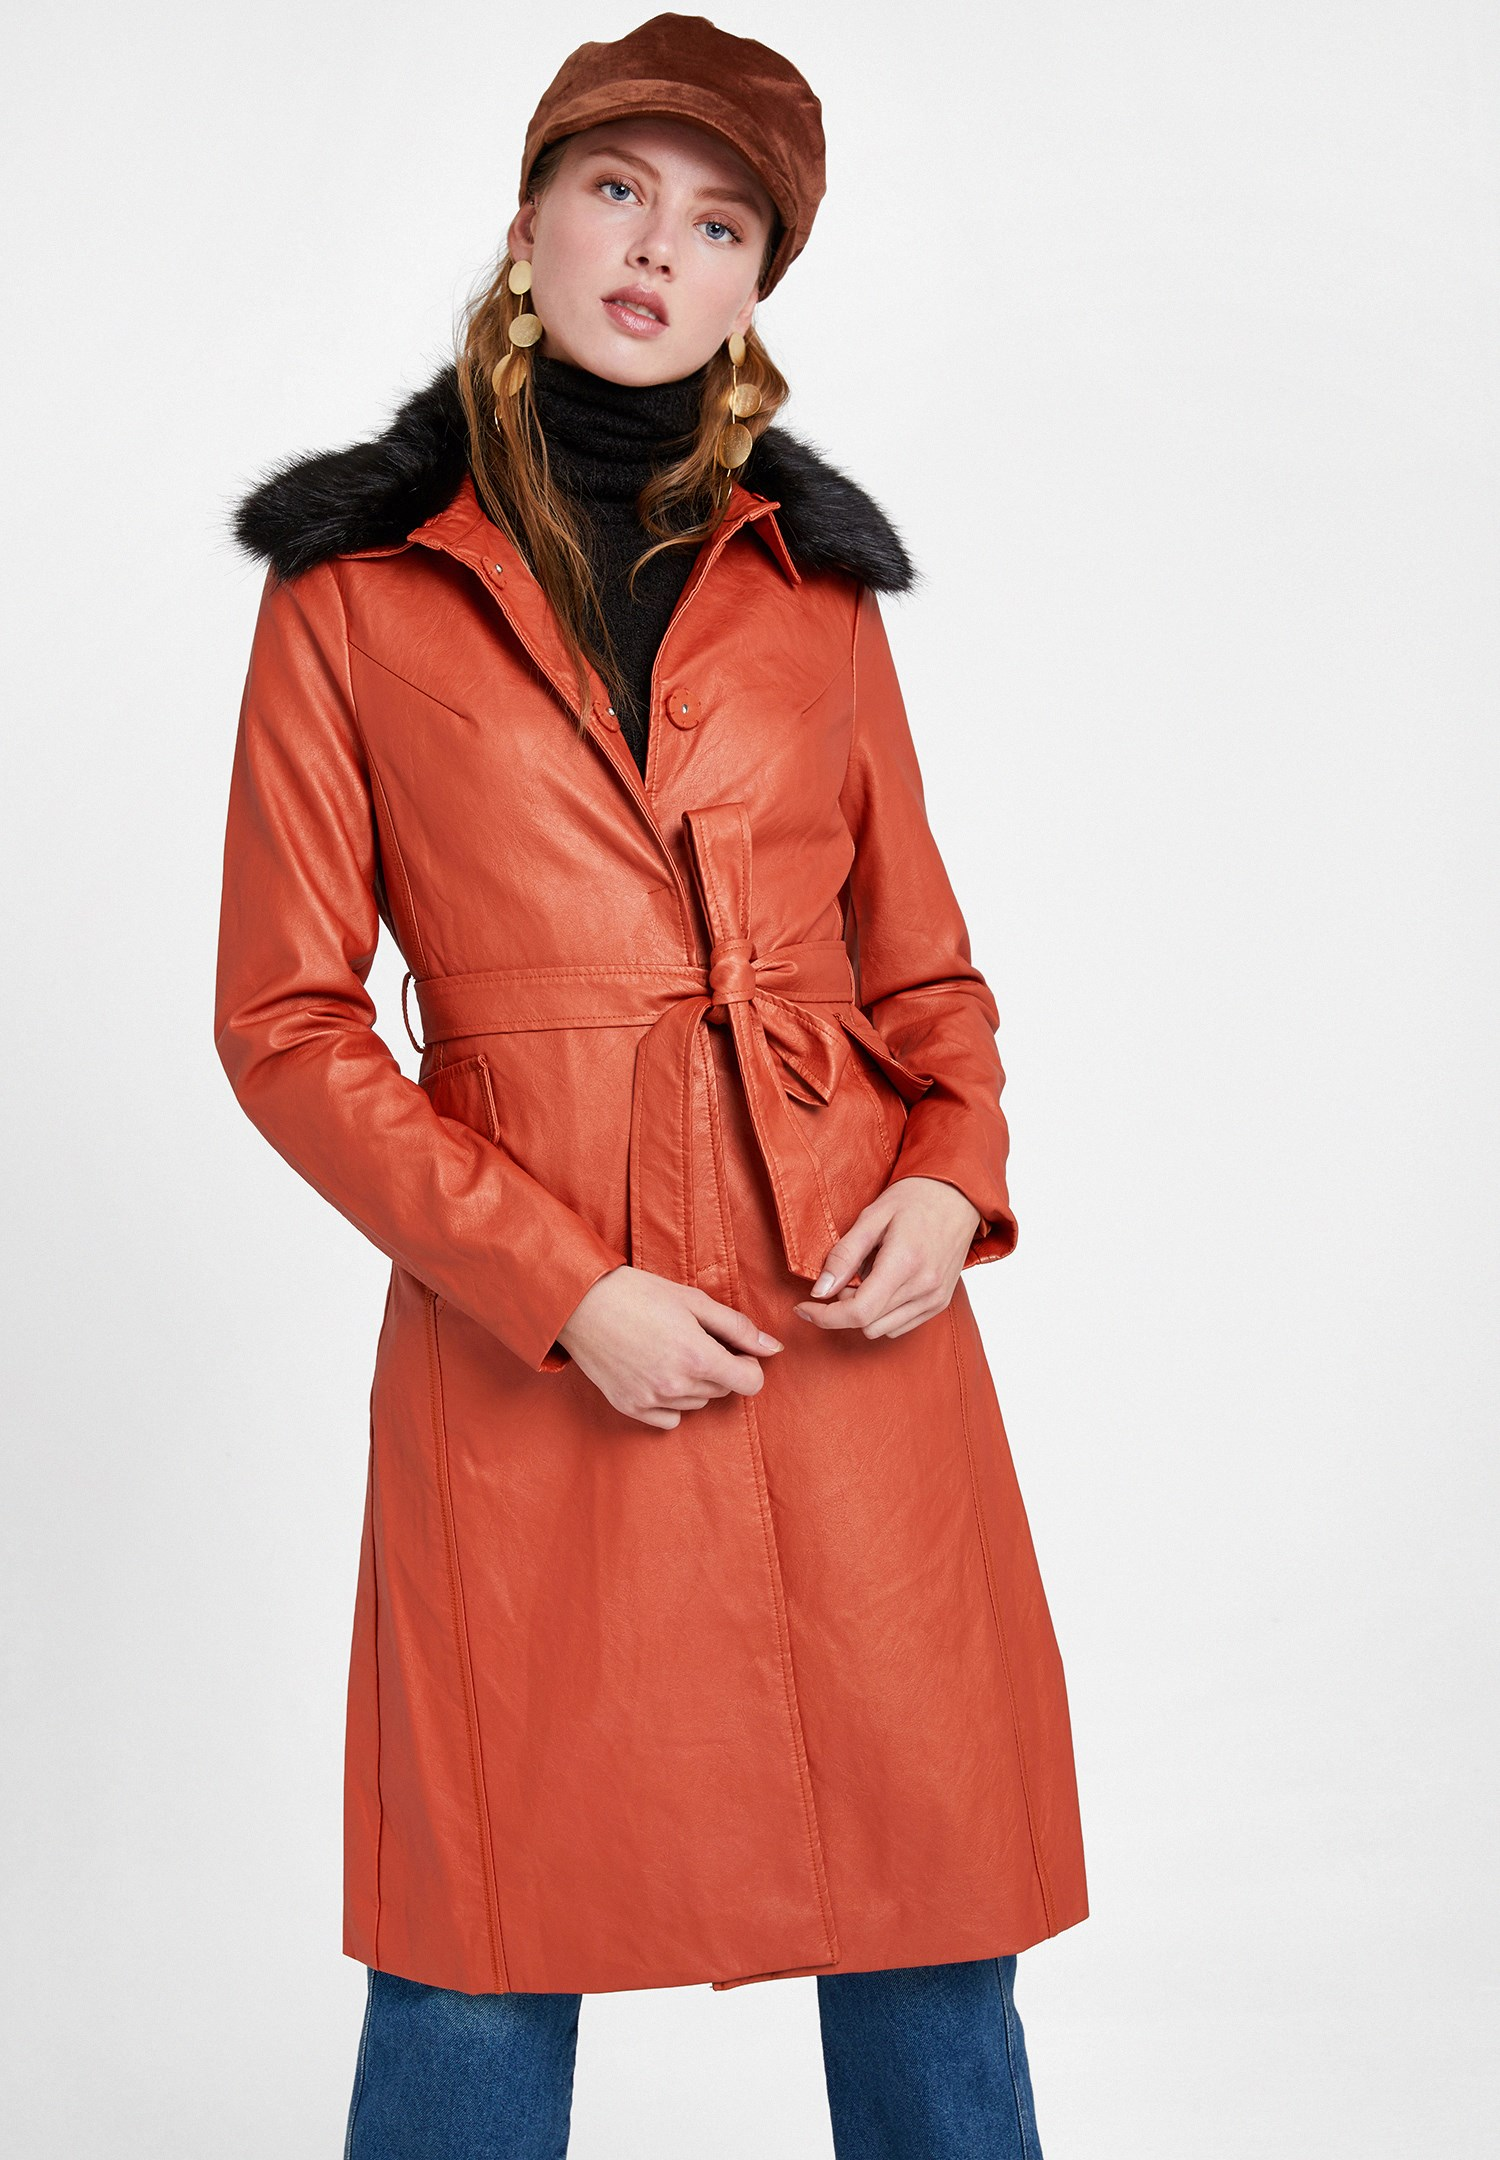 Women Red Leather Jacket with Faux Fur Details